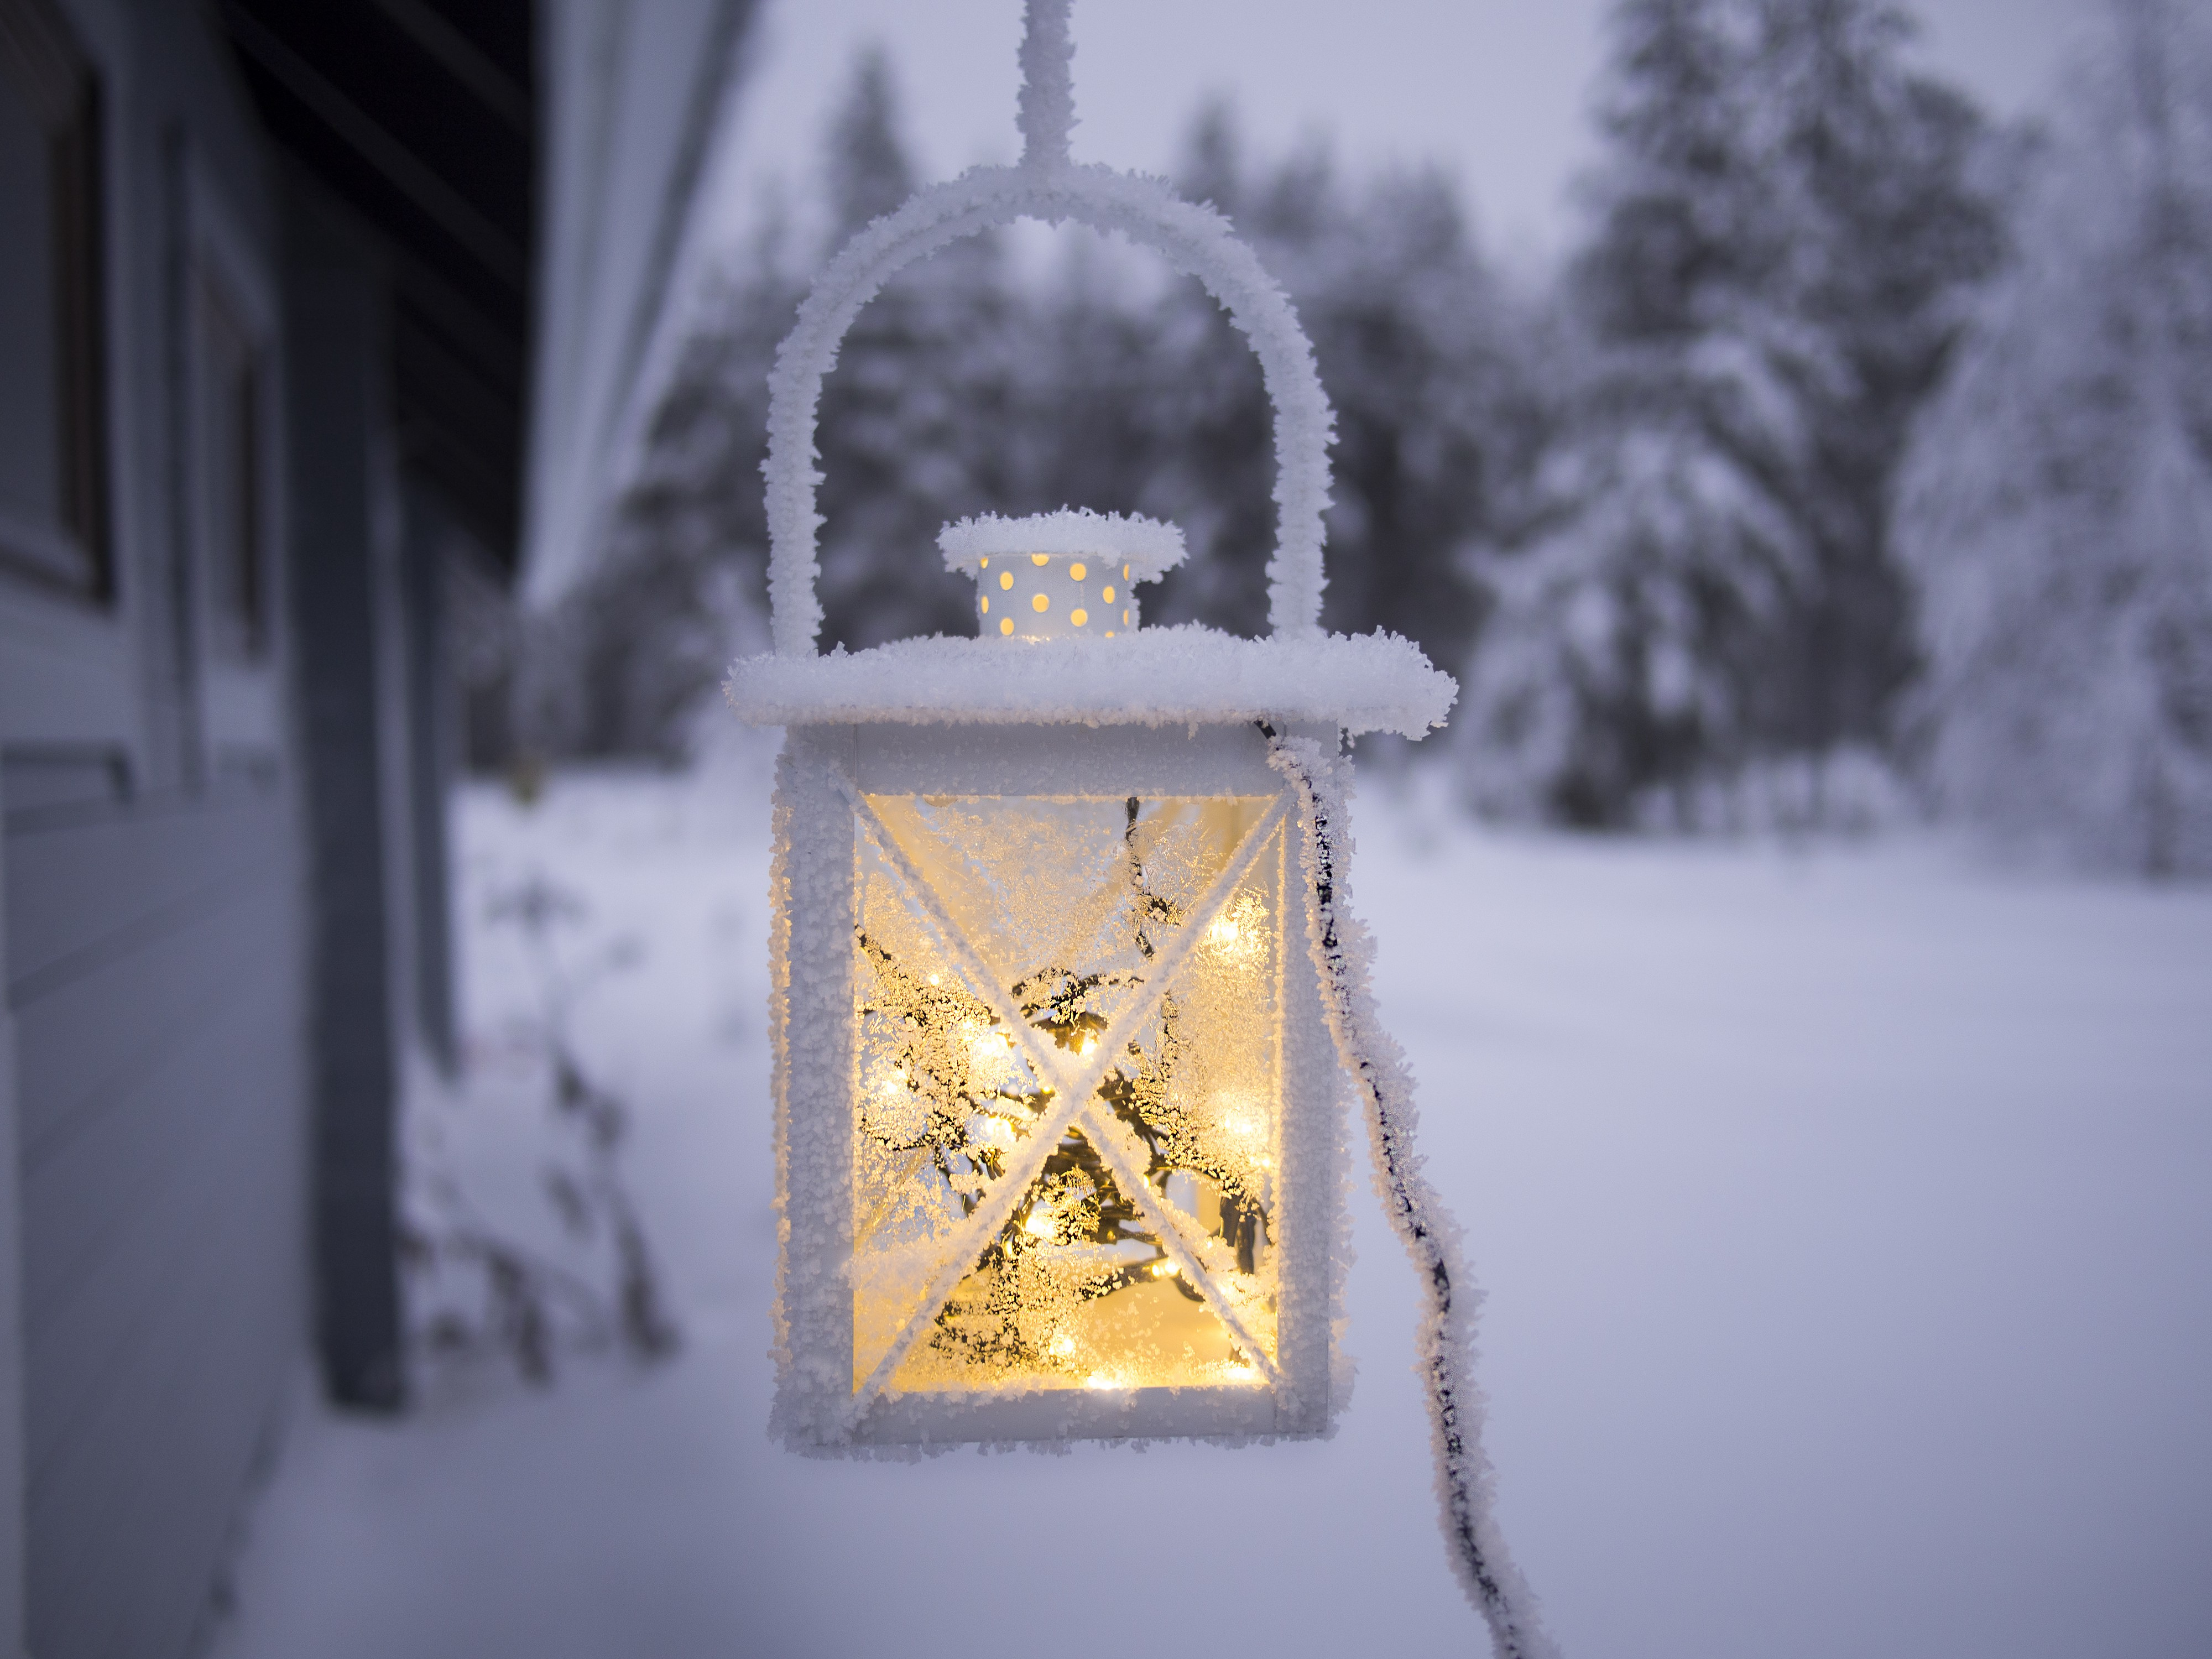 Winter scenery. In the background there is an open area covered in snow. Pine trees covered in snow in the farther back. In the foreground is a snow covered lantern, with a yellow glowing light inside.